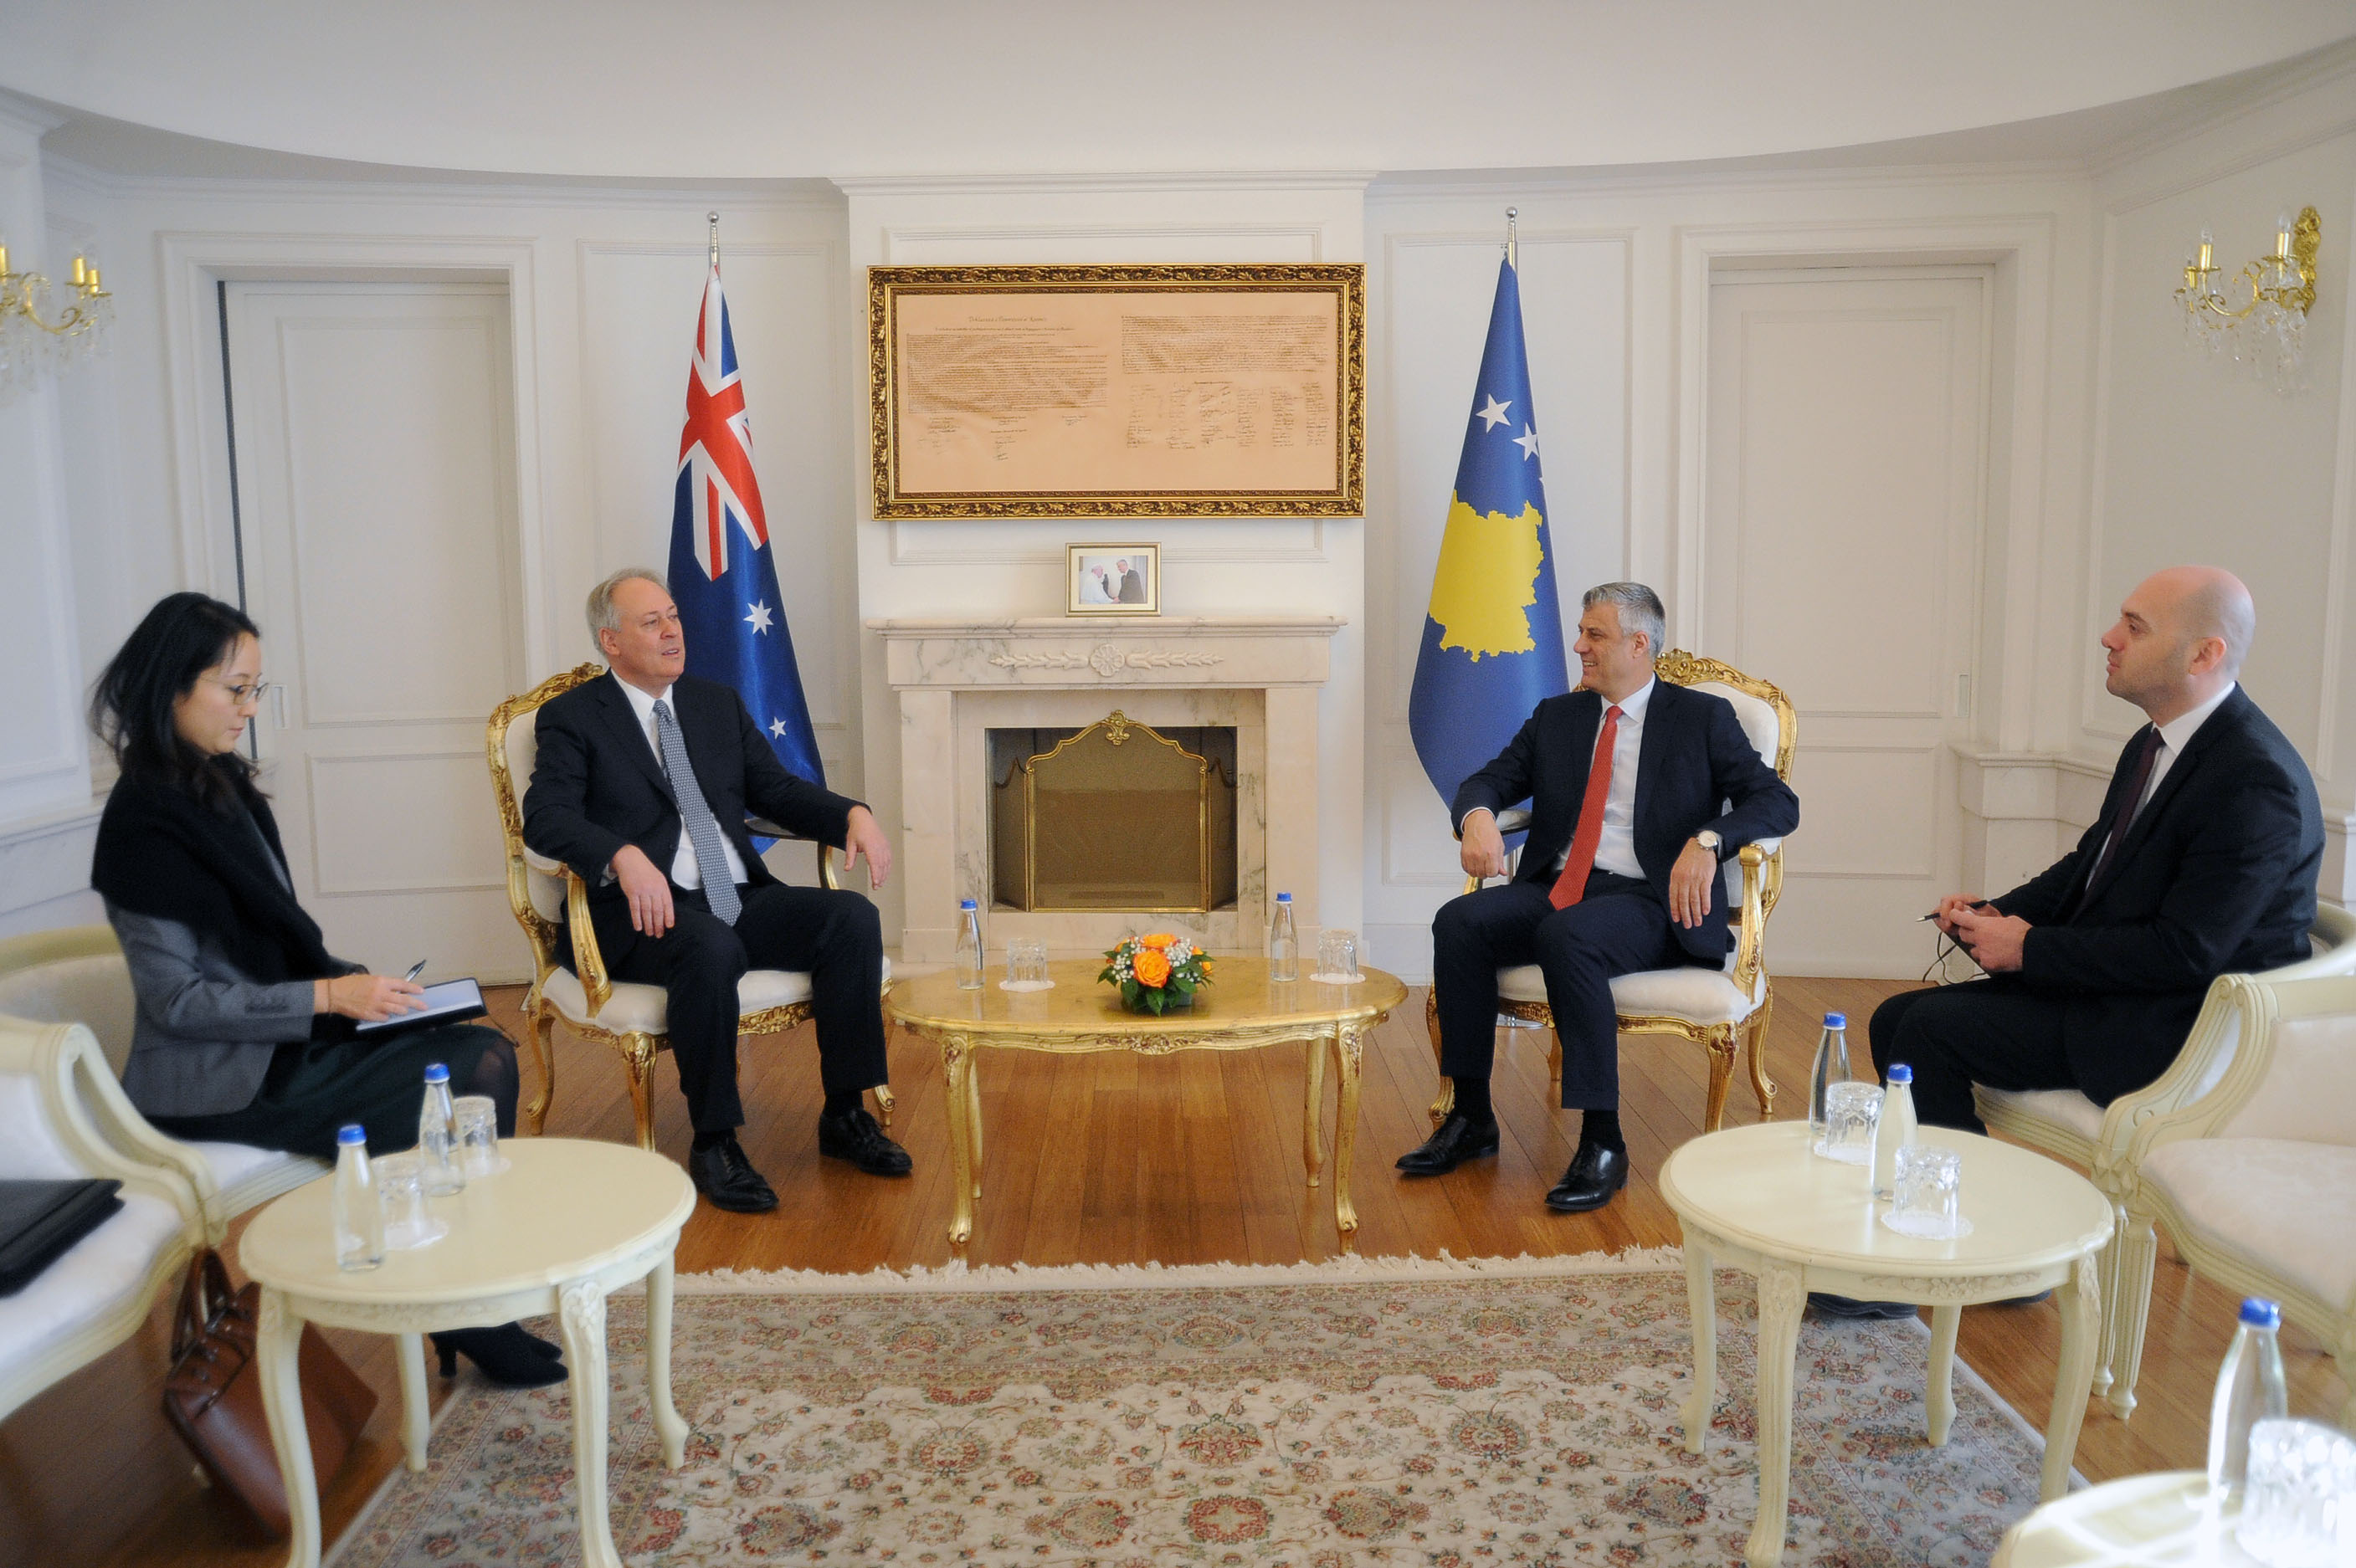 President Thaçi received the credentials of the new Ambassador of Australia